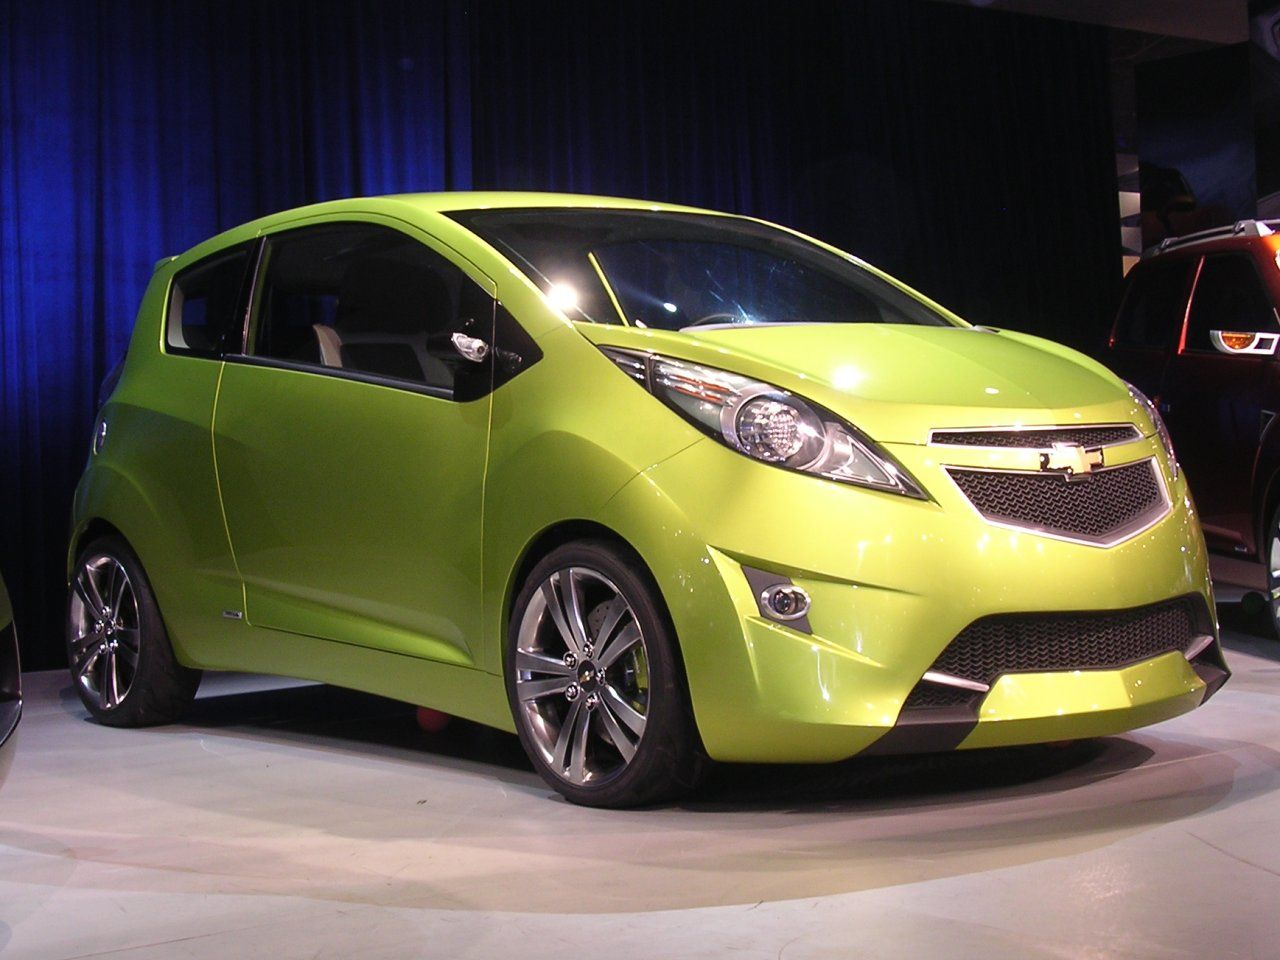 Chevrolet beat chevrolet beat this awesome picture selections about chevrolet beat is available to download